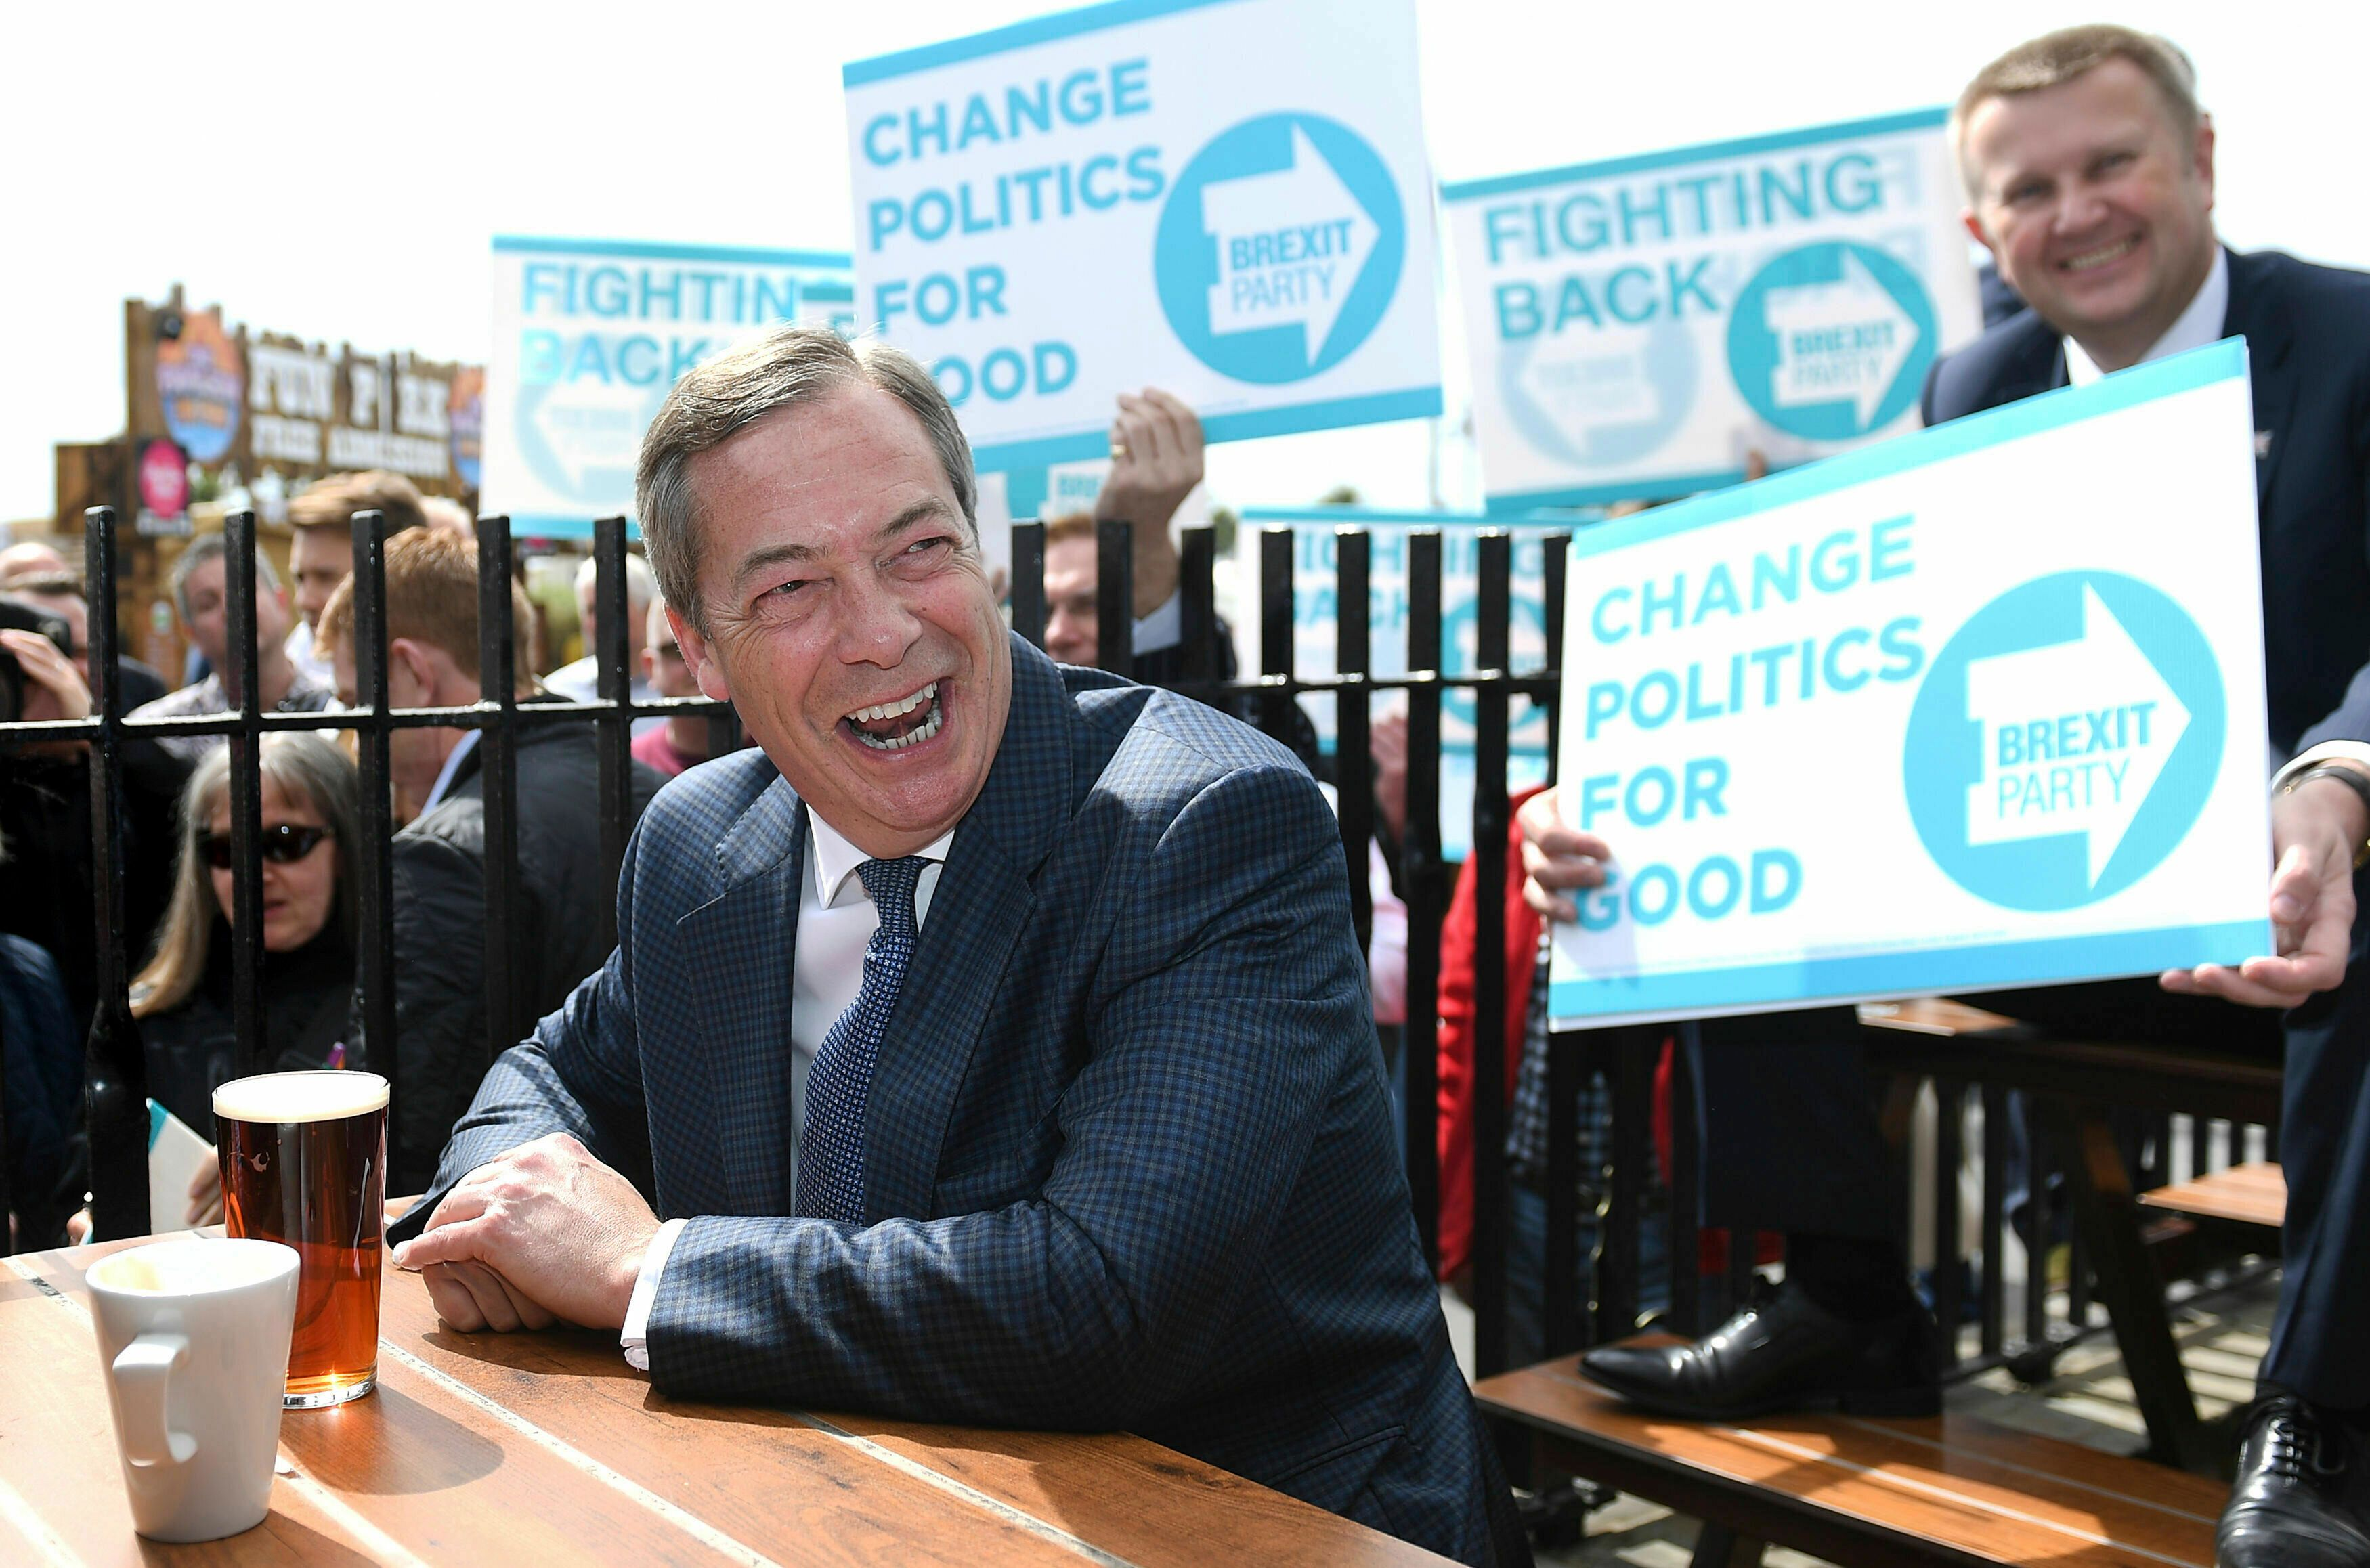 MEP, Nigel Farage reacts, at the Moon and Starfish public house during a walkabout and rally in Clacton, Essex, England for his Brexit Party Wednesday April 24, 2019. (Joe Giddens/PA via AP)